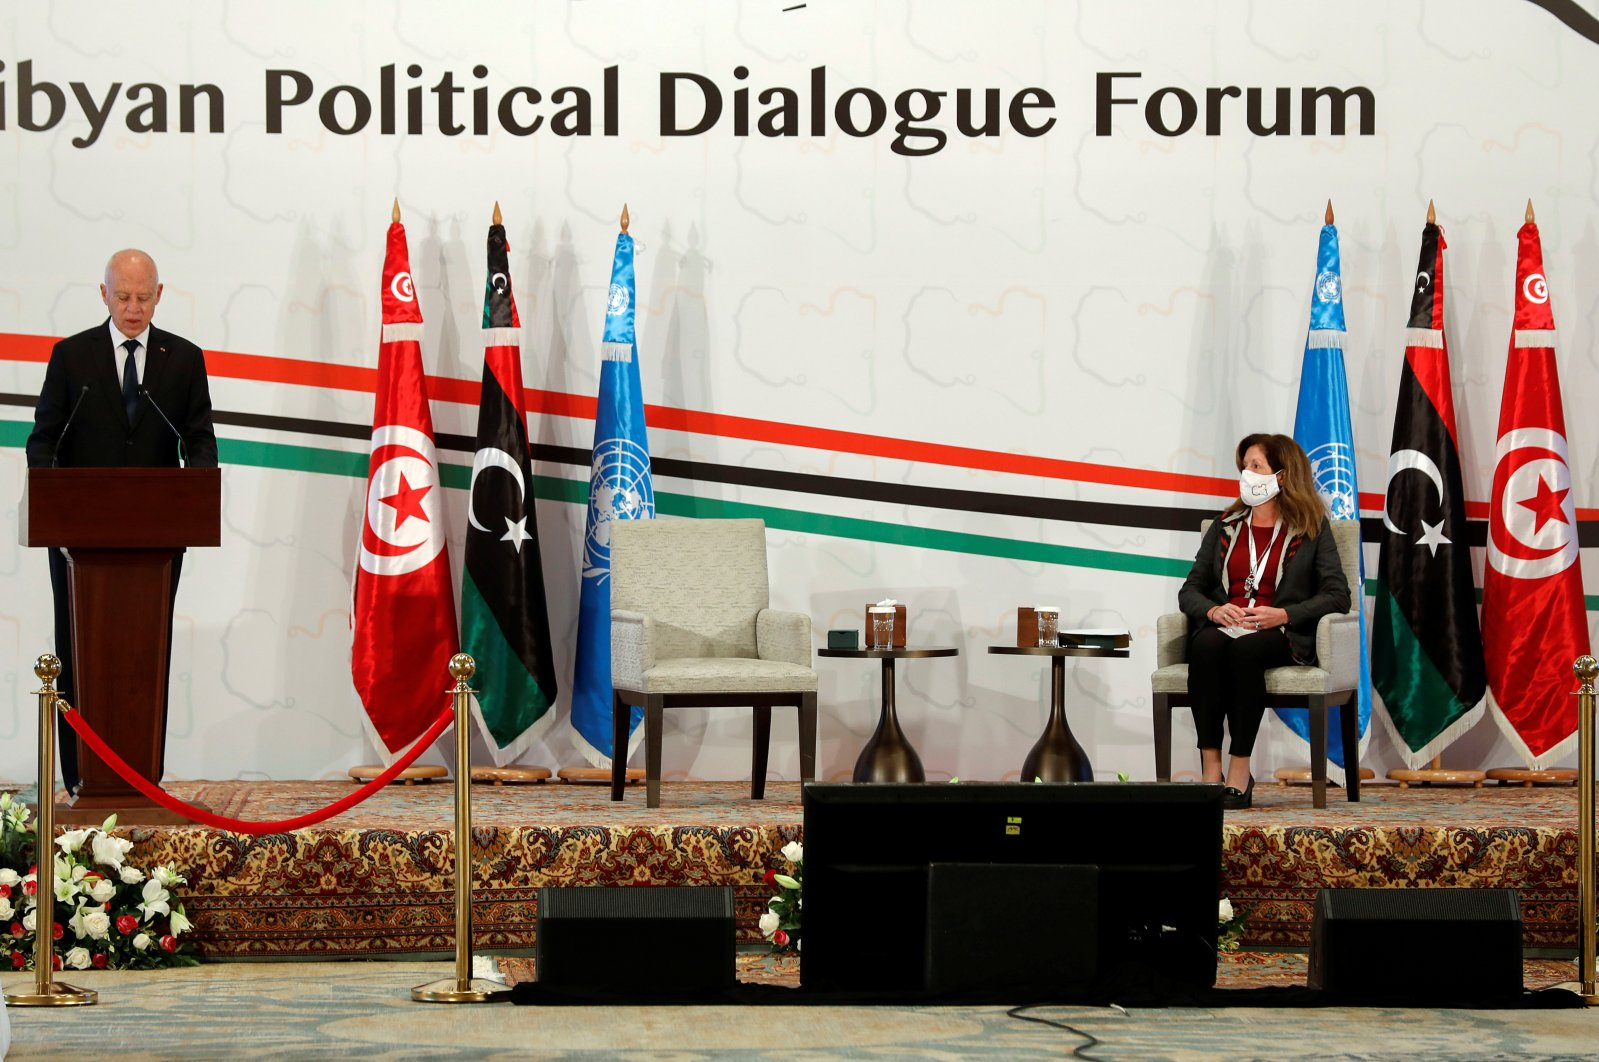 Tunisia's President Kais Saied speaks as Deputy Special Representative of the U.N. Secretary-General for Political Affairs in Libya Stephanie Williams listens to him during the Libyan Political Dialogue Forum in Tunis, Tunisia Nov. 9, 2020. (REUTERS Photo)